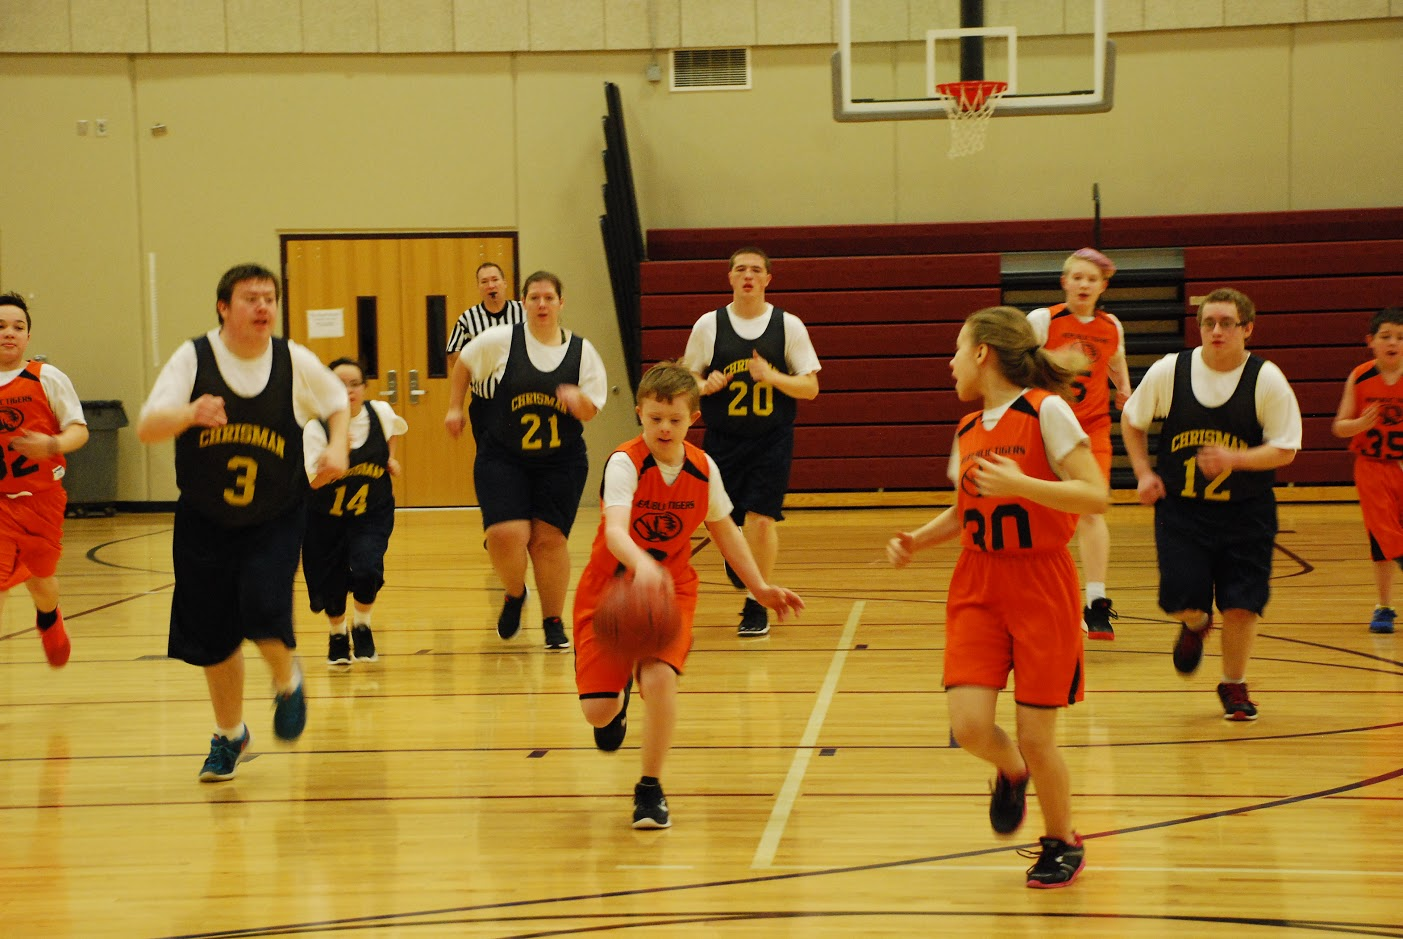 Repmo Special Olympics Competes At Regional Tourney